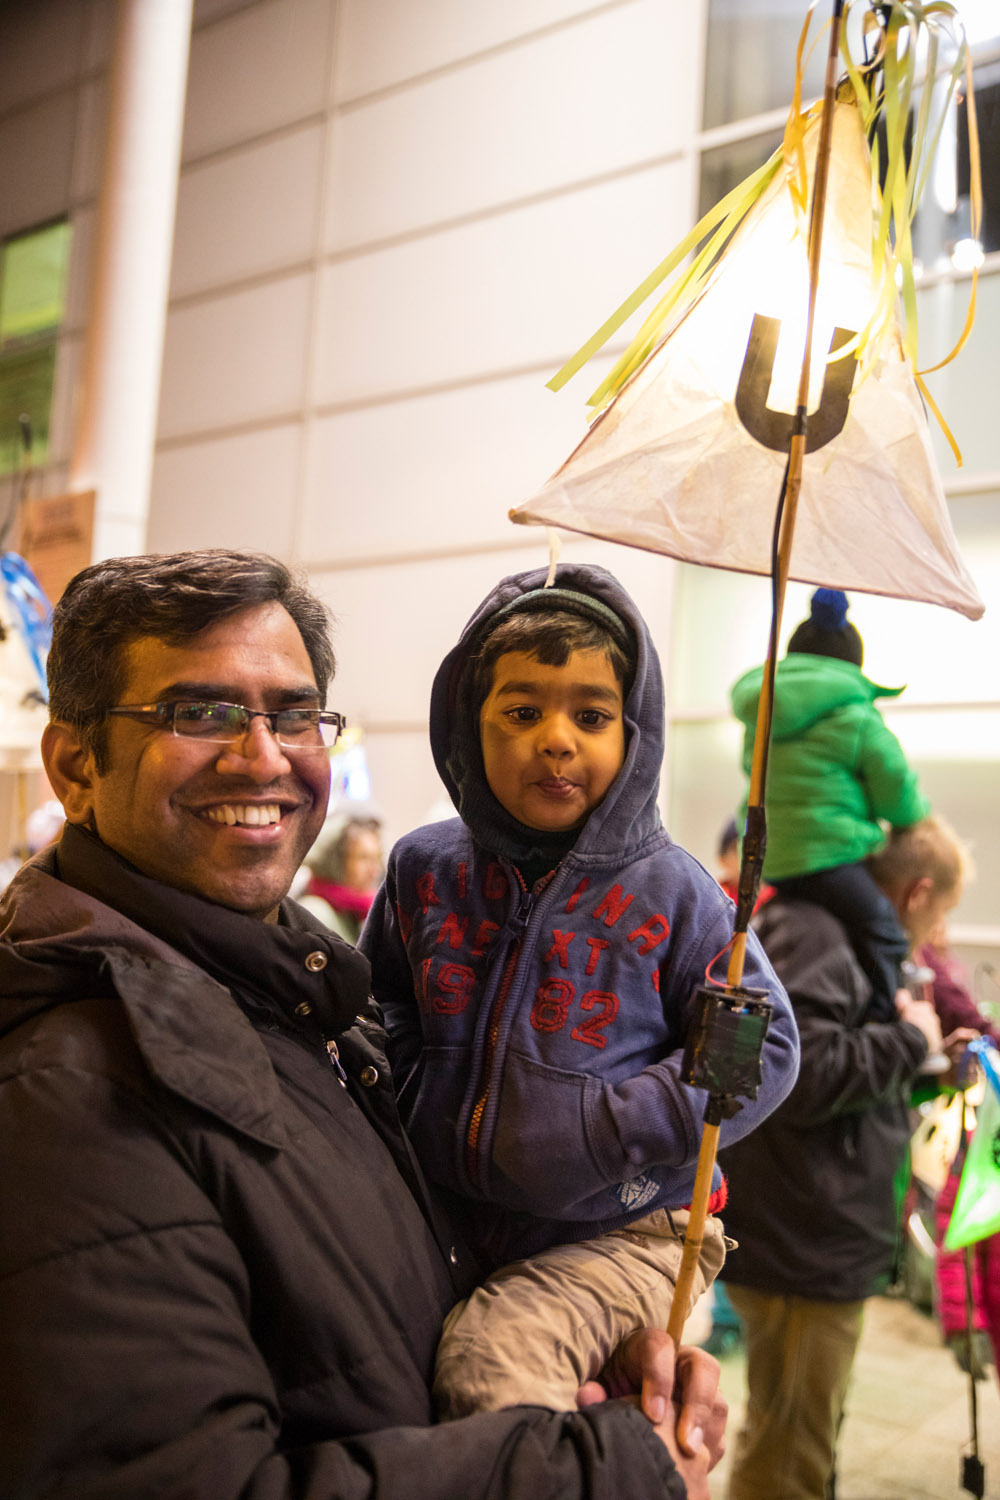 BellSquareLDN_Hounslow WinterLights Watermans 19Nov2016┬®Vipul Sangoi 018 9664.jpg